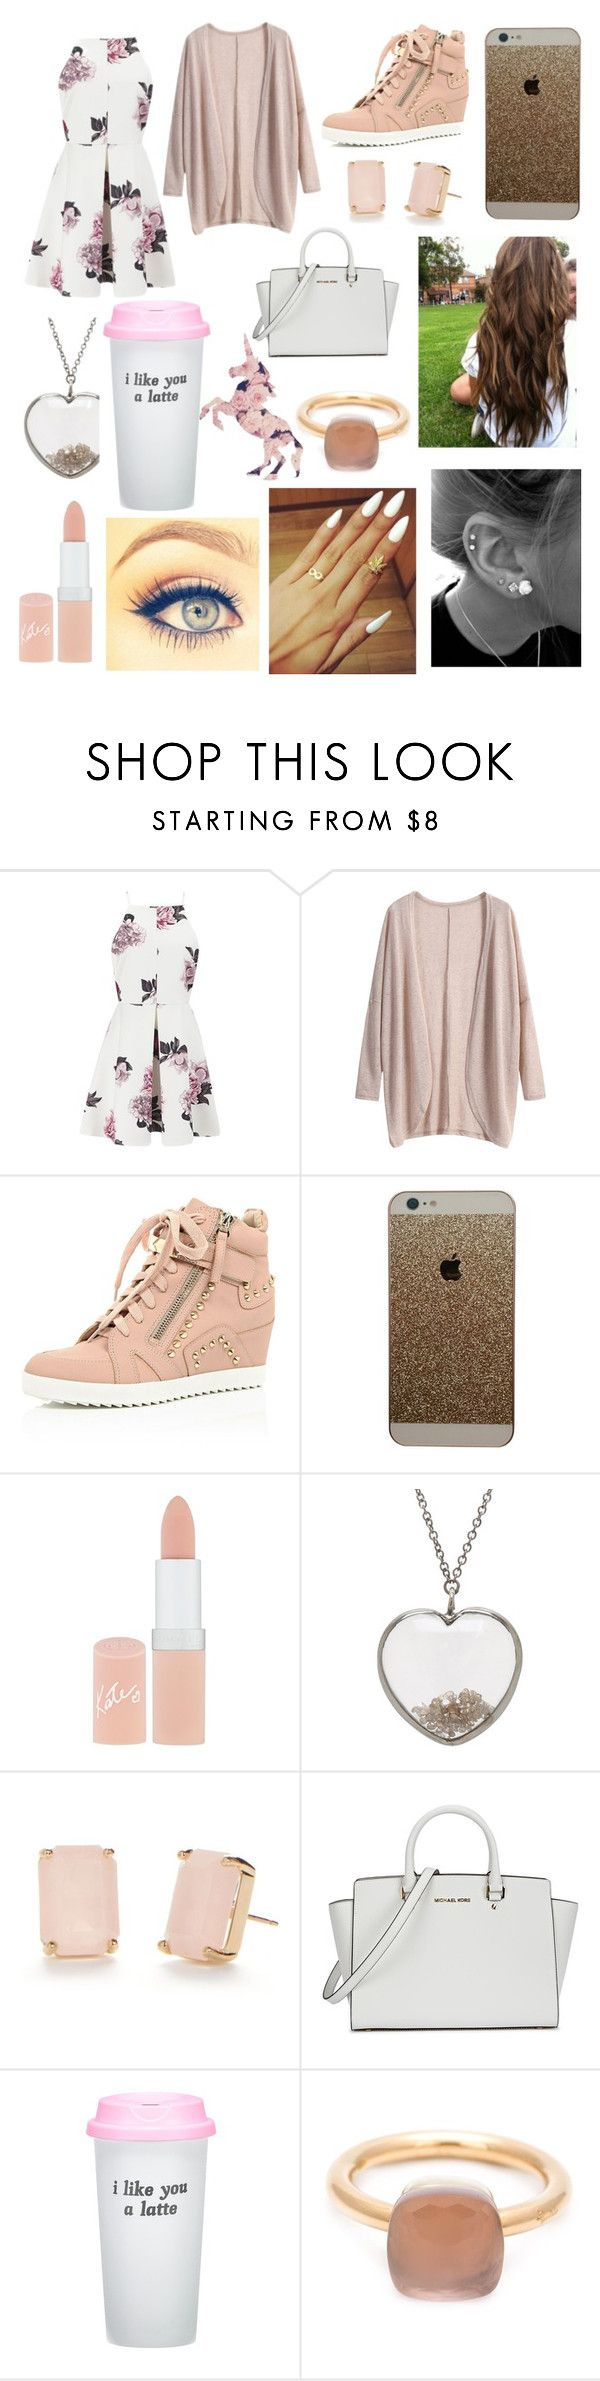 """Who wants a shoutout?!"" by hailey1011 ❤ liked on Polyvore featuring Cameo, Rimmel, ADORNIA, Kate Spade, Michael Kors, Bow & Drape, Pomellato, women's clothing, women and female"